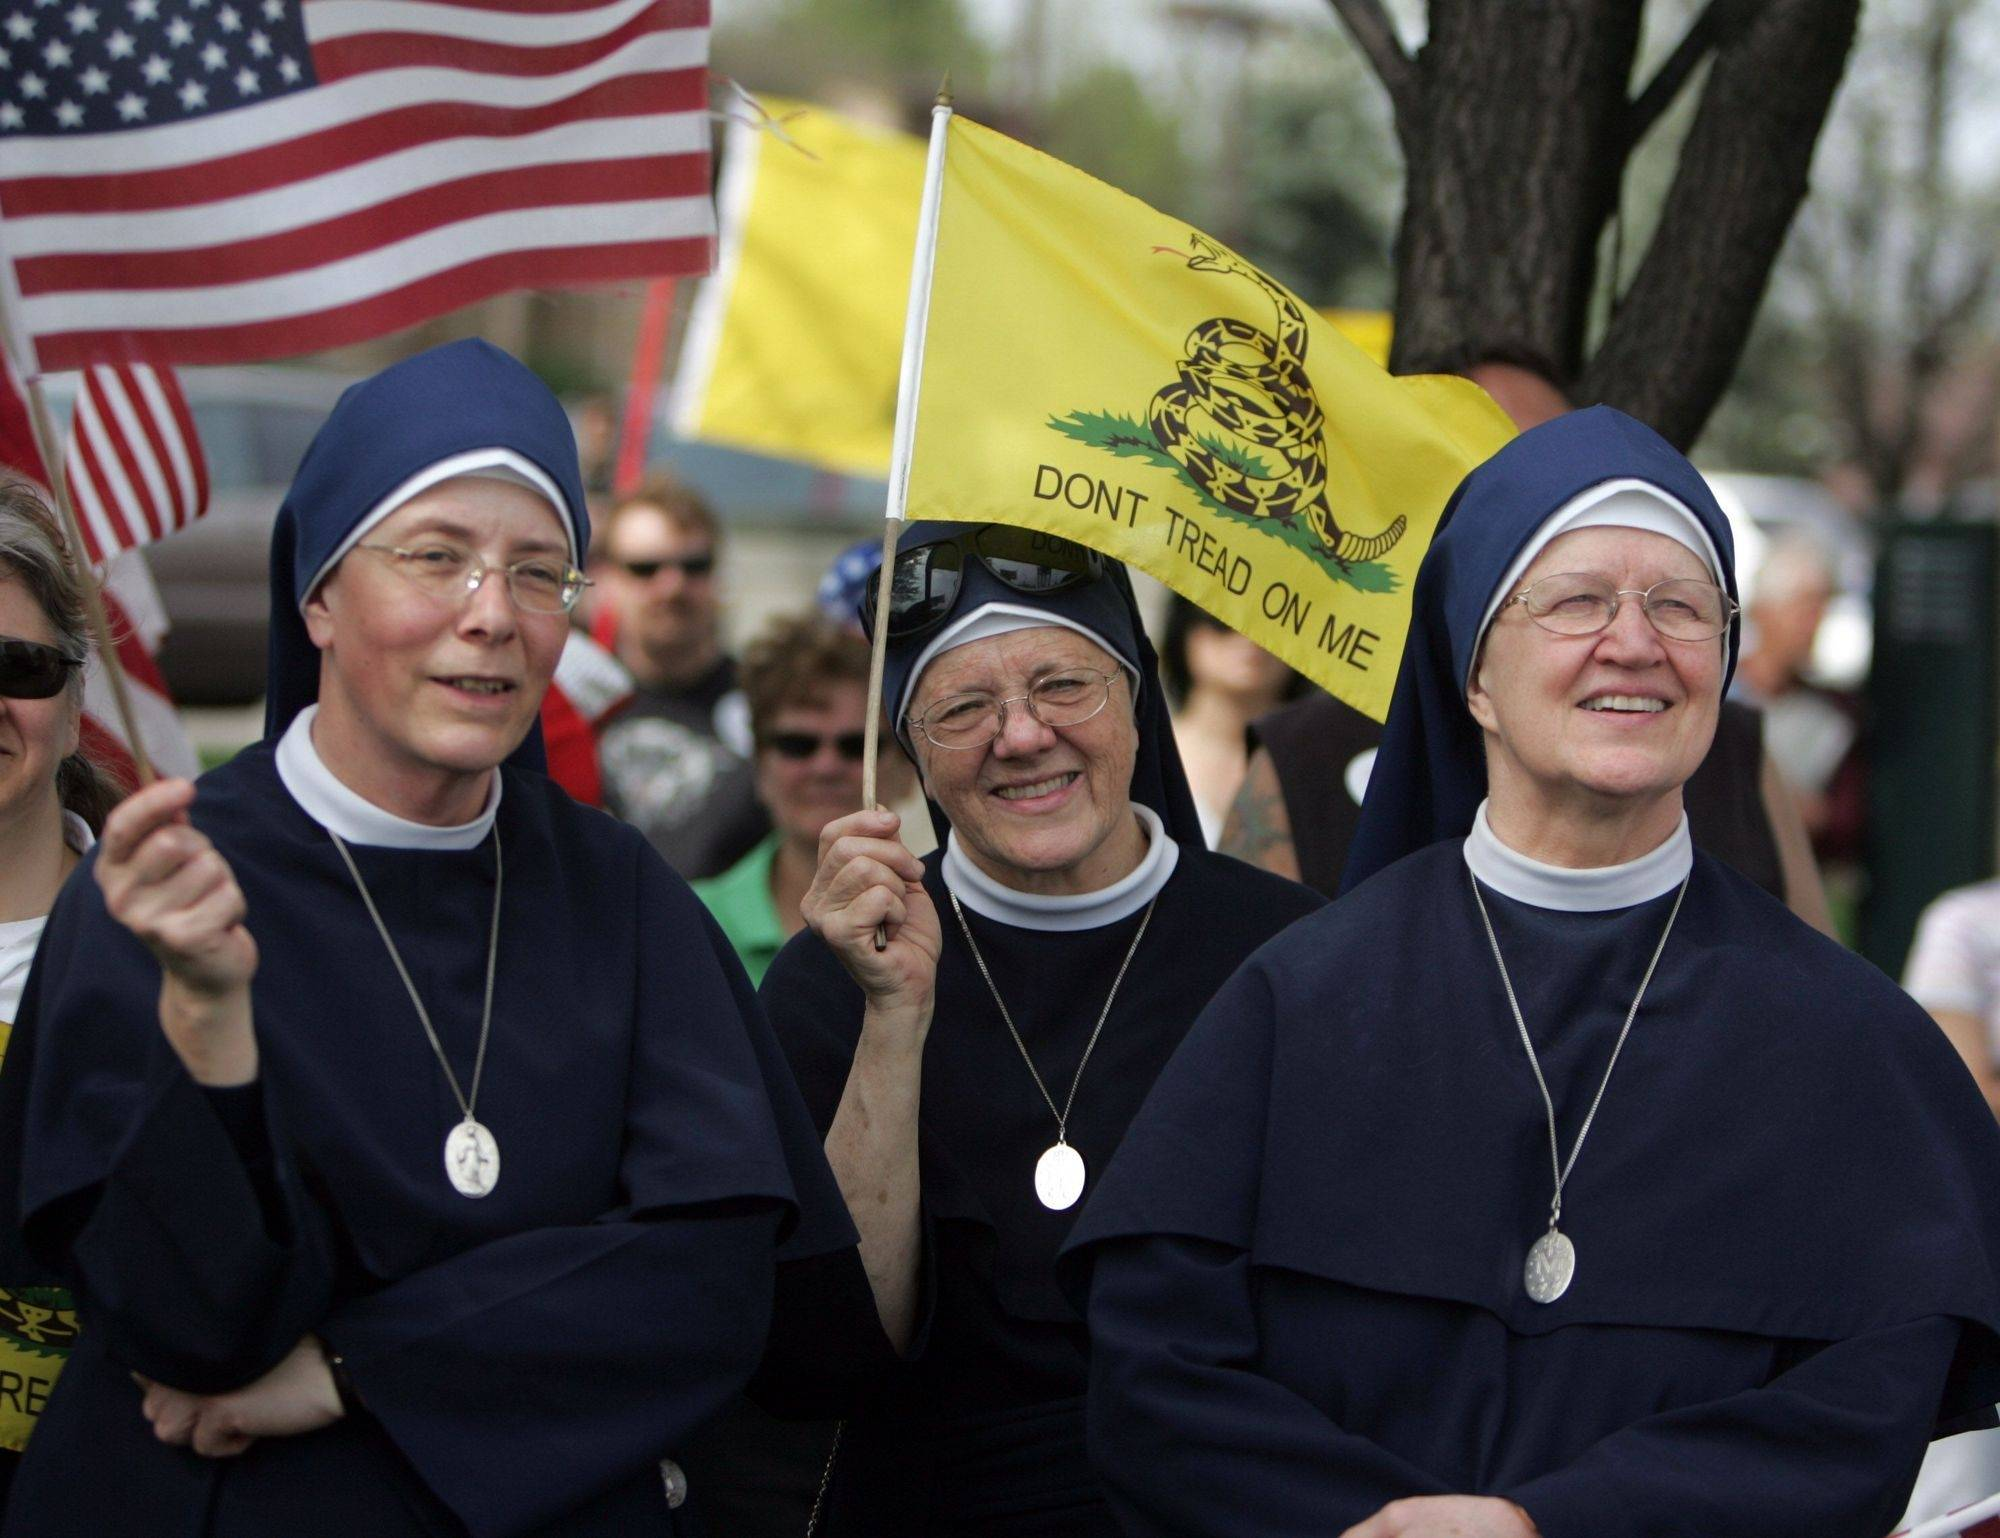 Sister Rose Bernadette, left, Sister John Marie, and Mother Mary Patrick, right, of Libertyville's Daughters of the Immaculata voice their opinion at a recent Tea Party anti-tax rally in Palatine.